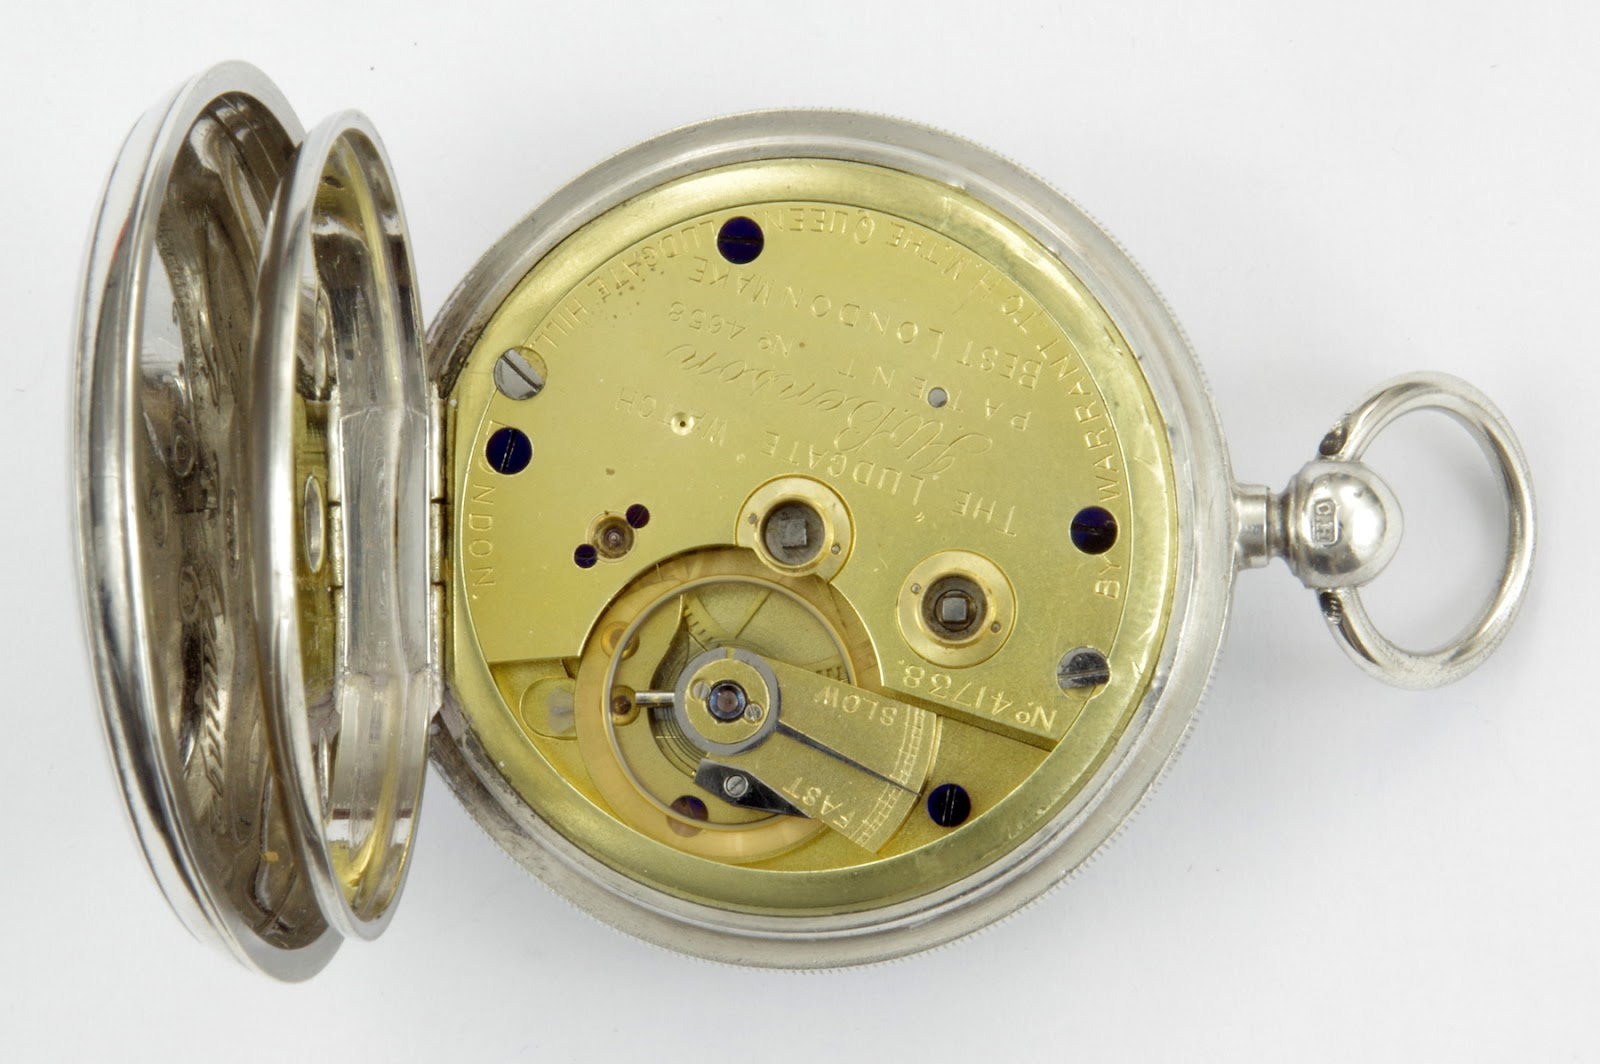 Oxford Pocket Watches Using Your Watch